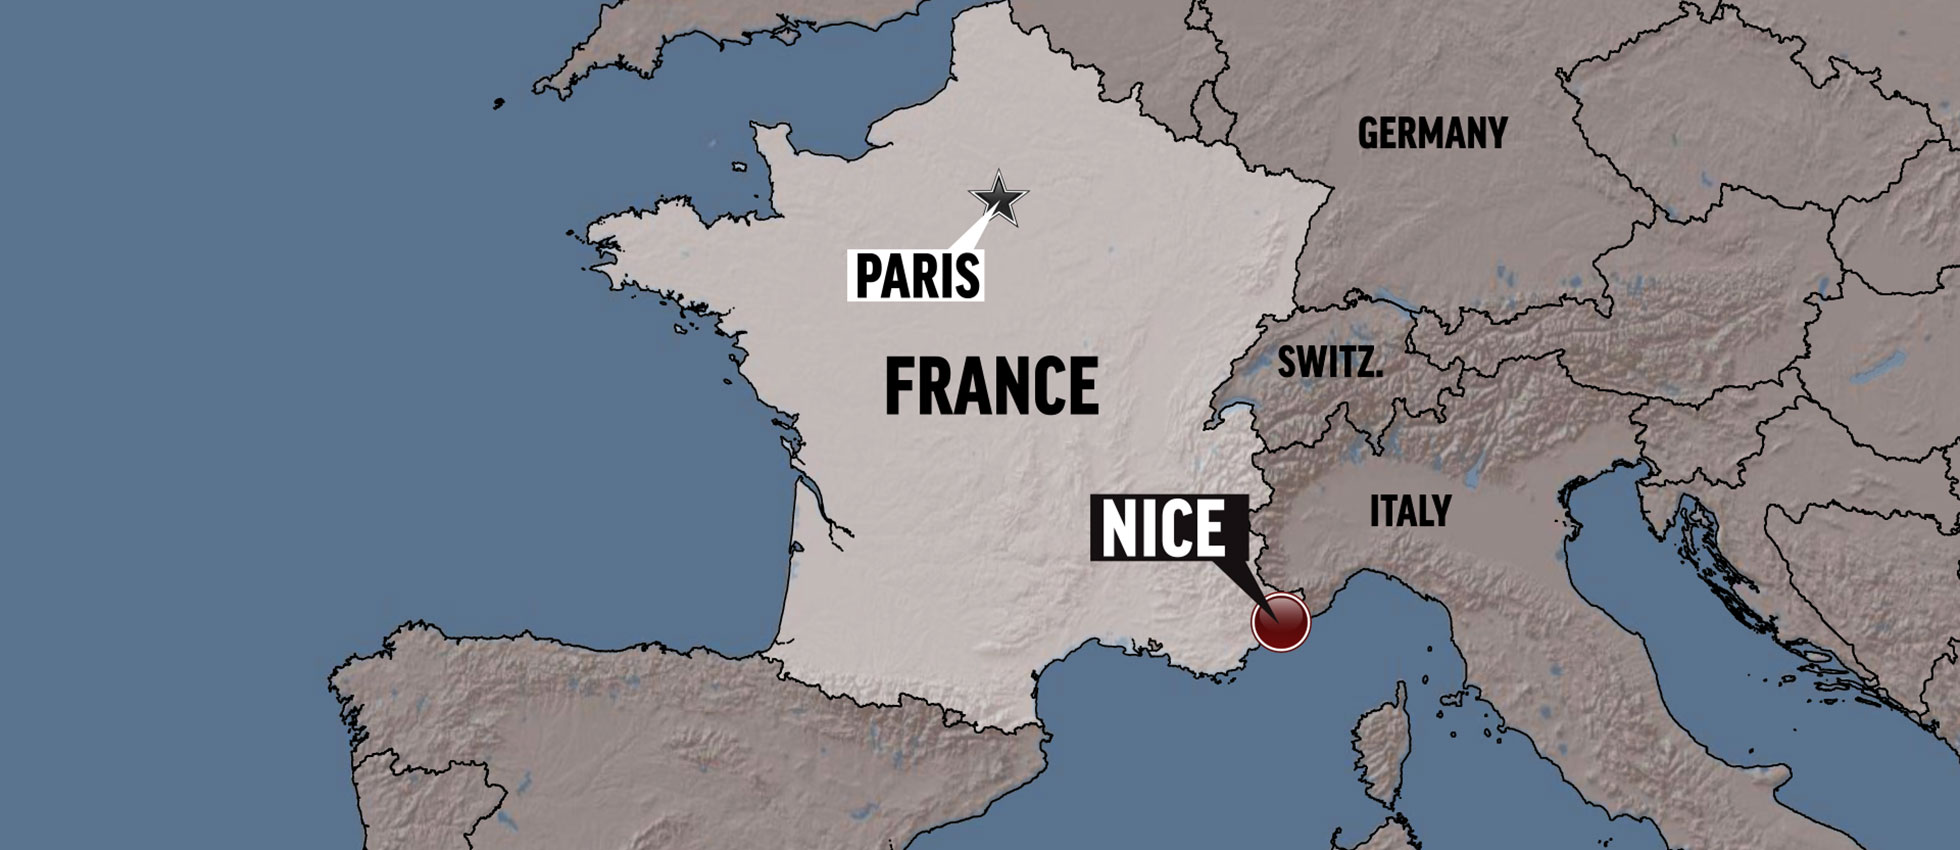 202 People Wounded 25 On Life Support After Attack In France